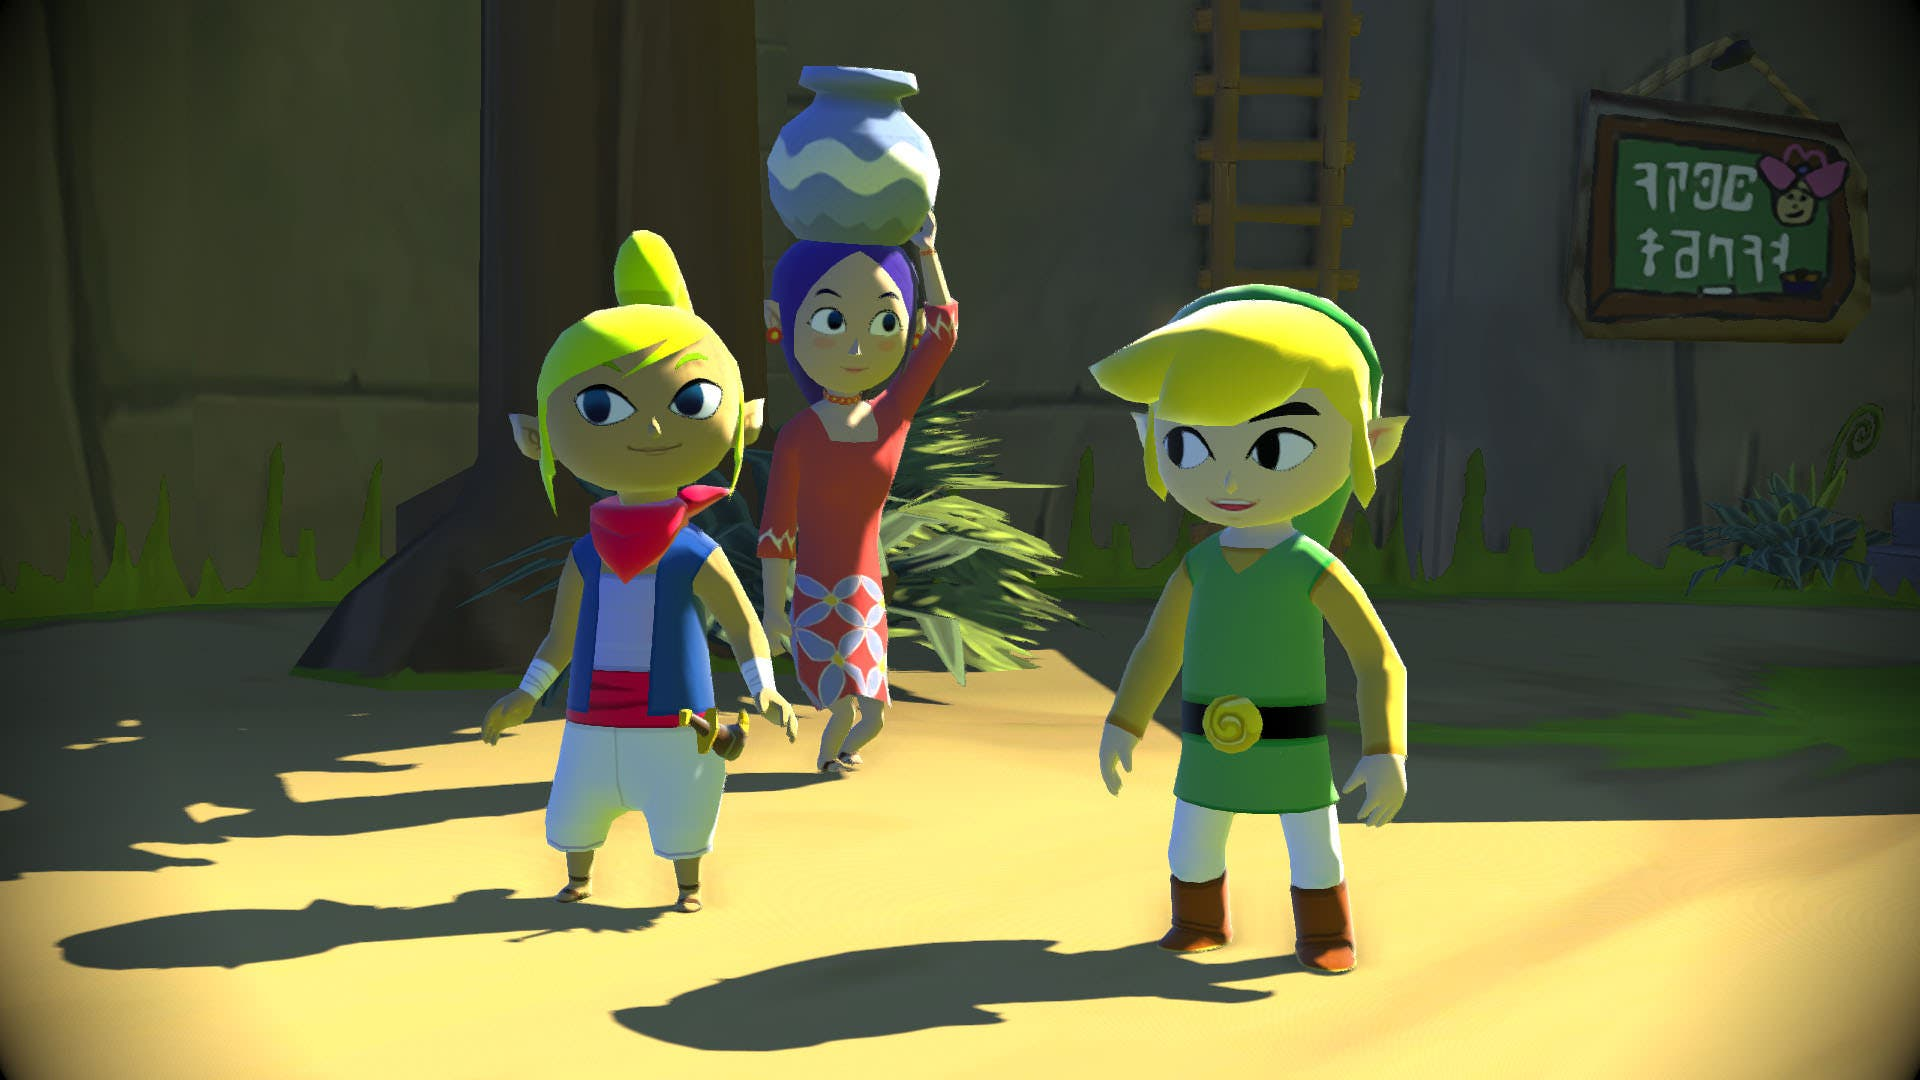 [E3 2013] 'The Legend Zelda: The Wind Waker HD' cambiará las funciones de Tingle.